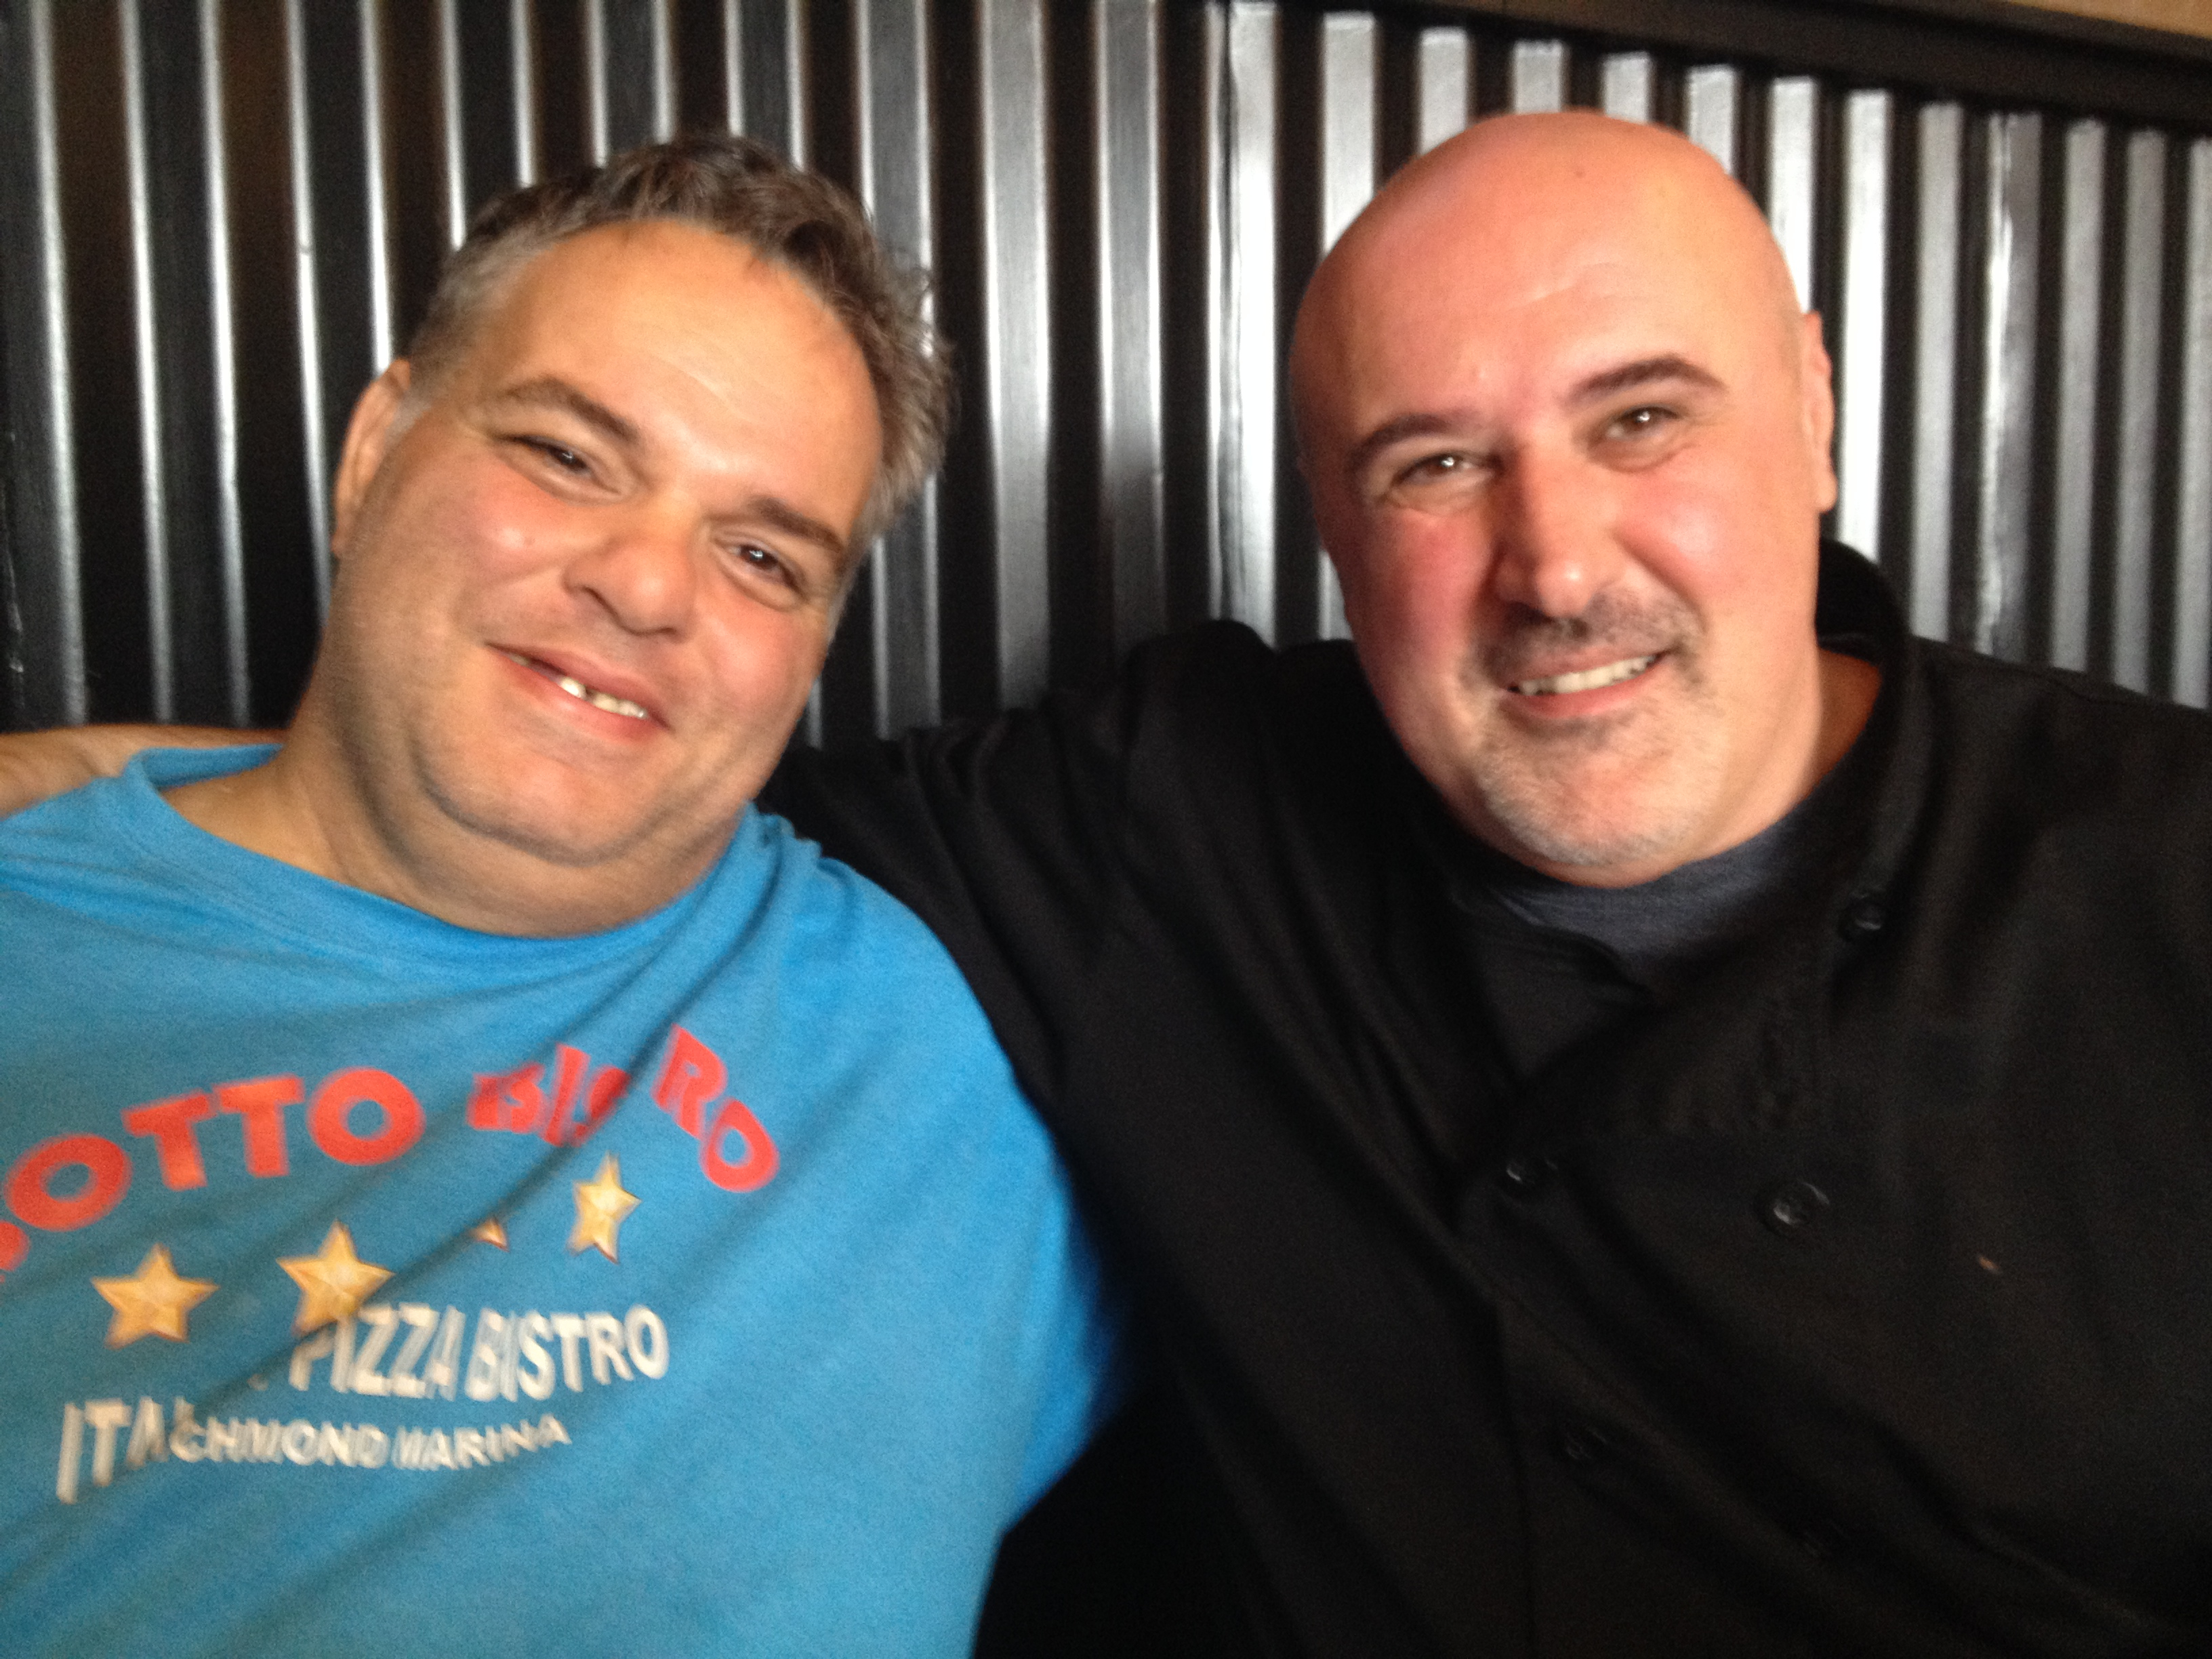 Davide Cerretini (right) and Michele Massimo are the co-owners and chefs at Botto Bistro.